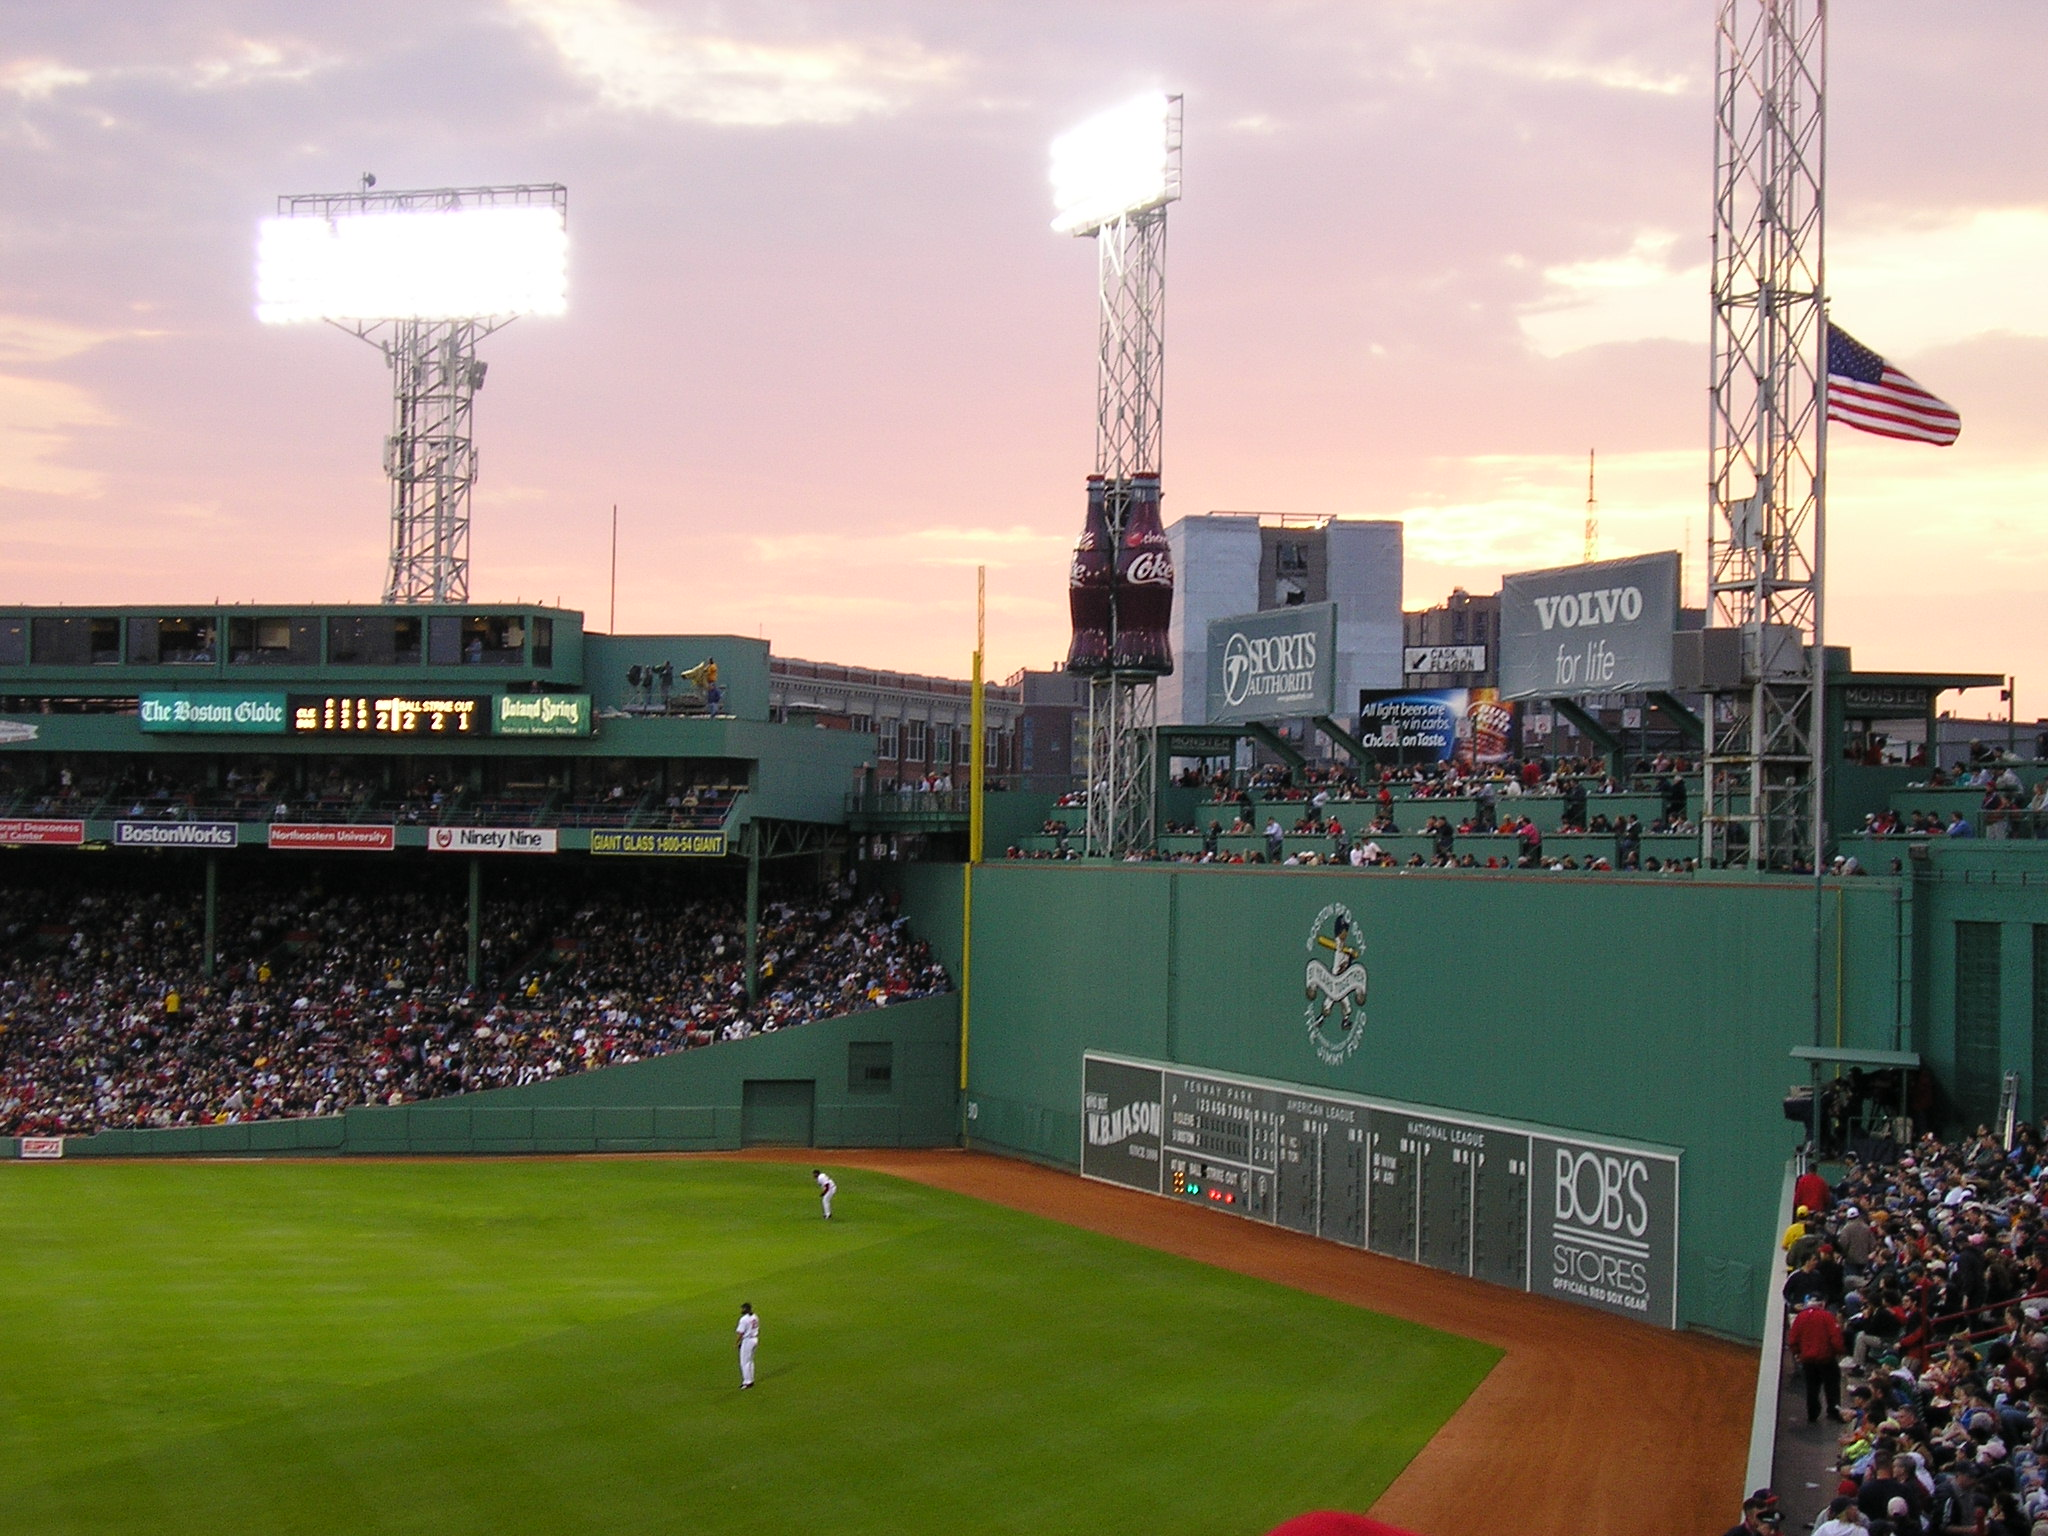 Download Fenway Park 8609 2048x1536 Px High Resolution Wallpaper